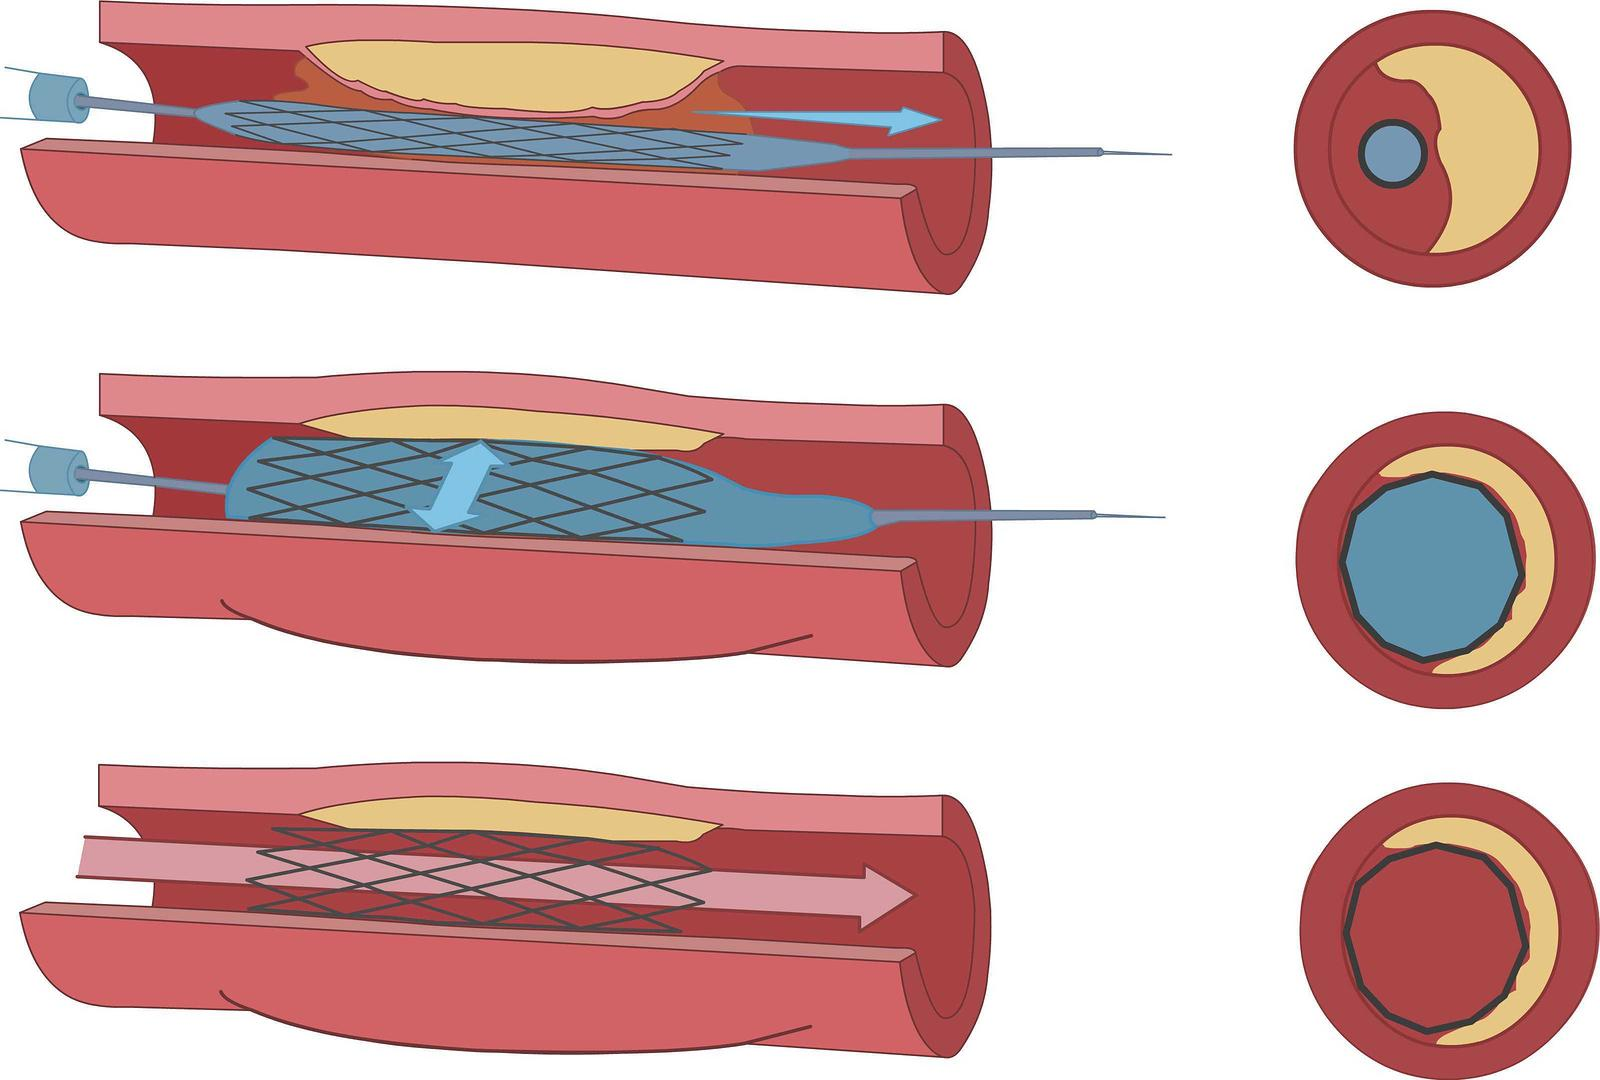 Endovascular Angioplasty and Stent Example Image - San Angelo Cardiovascular